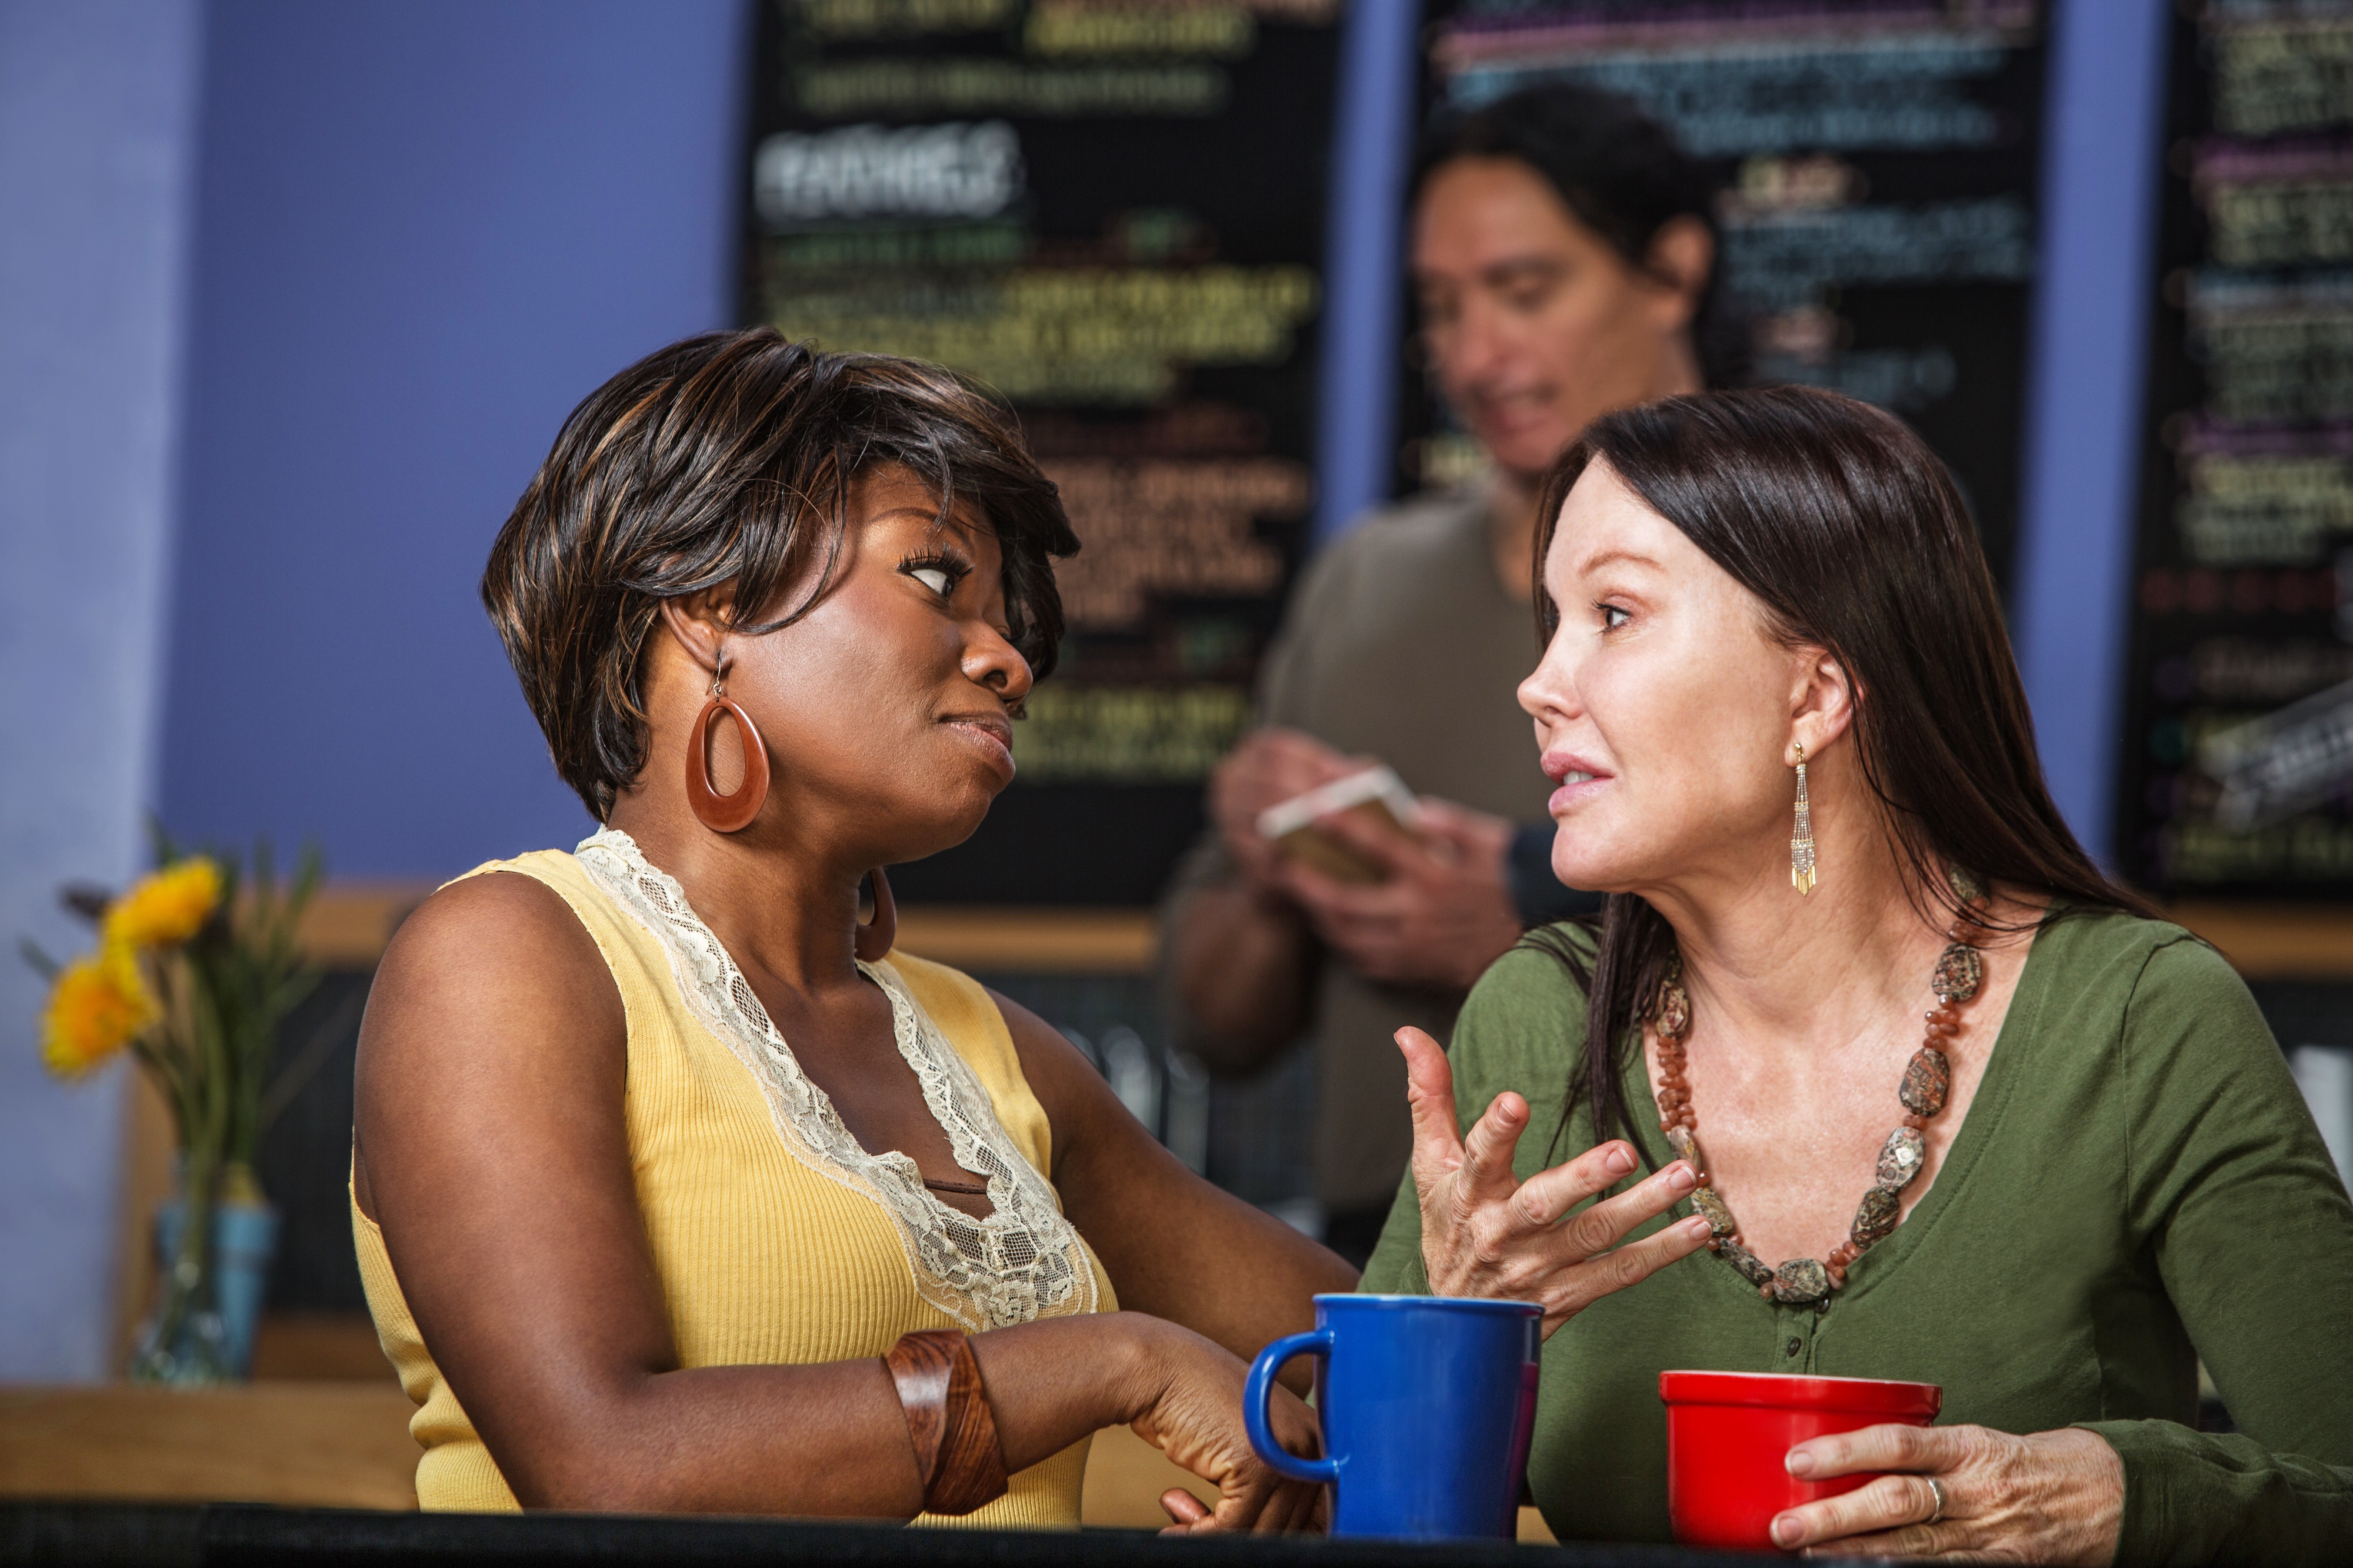 Two women (one clearly a person of color) conversing in a coffee shop